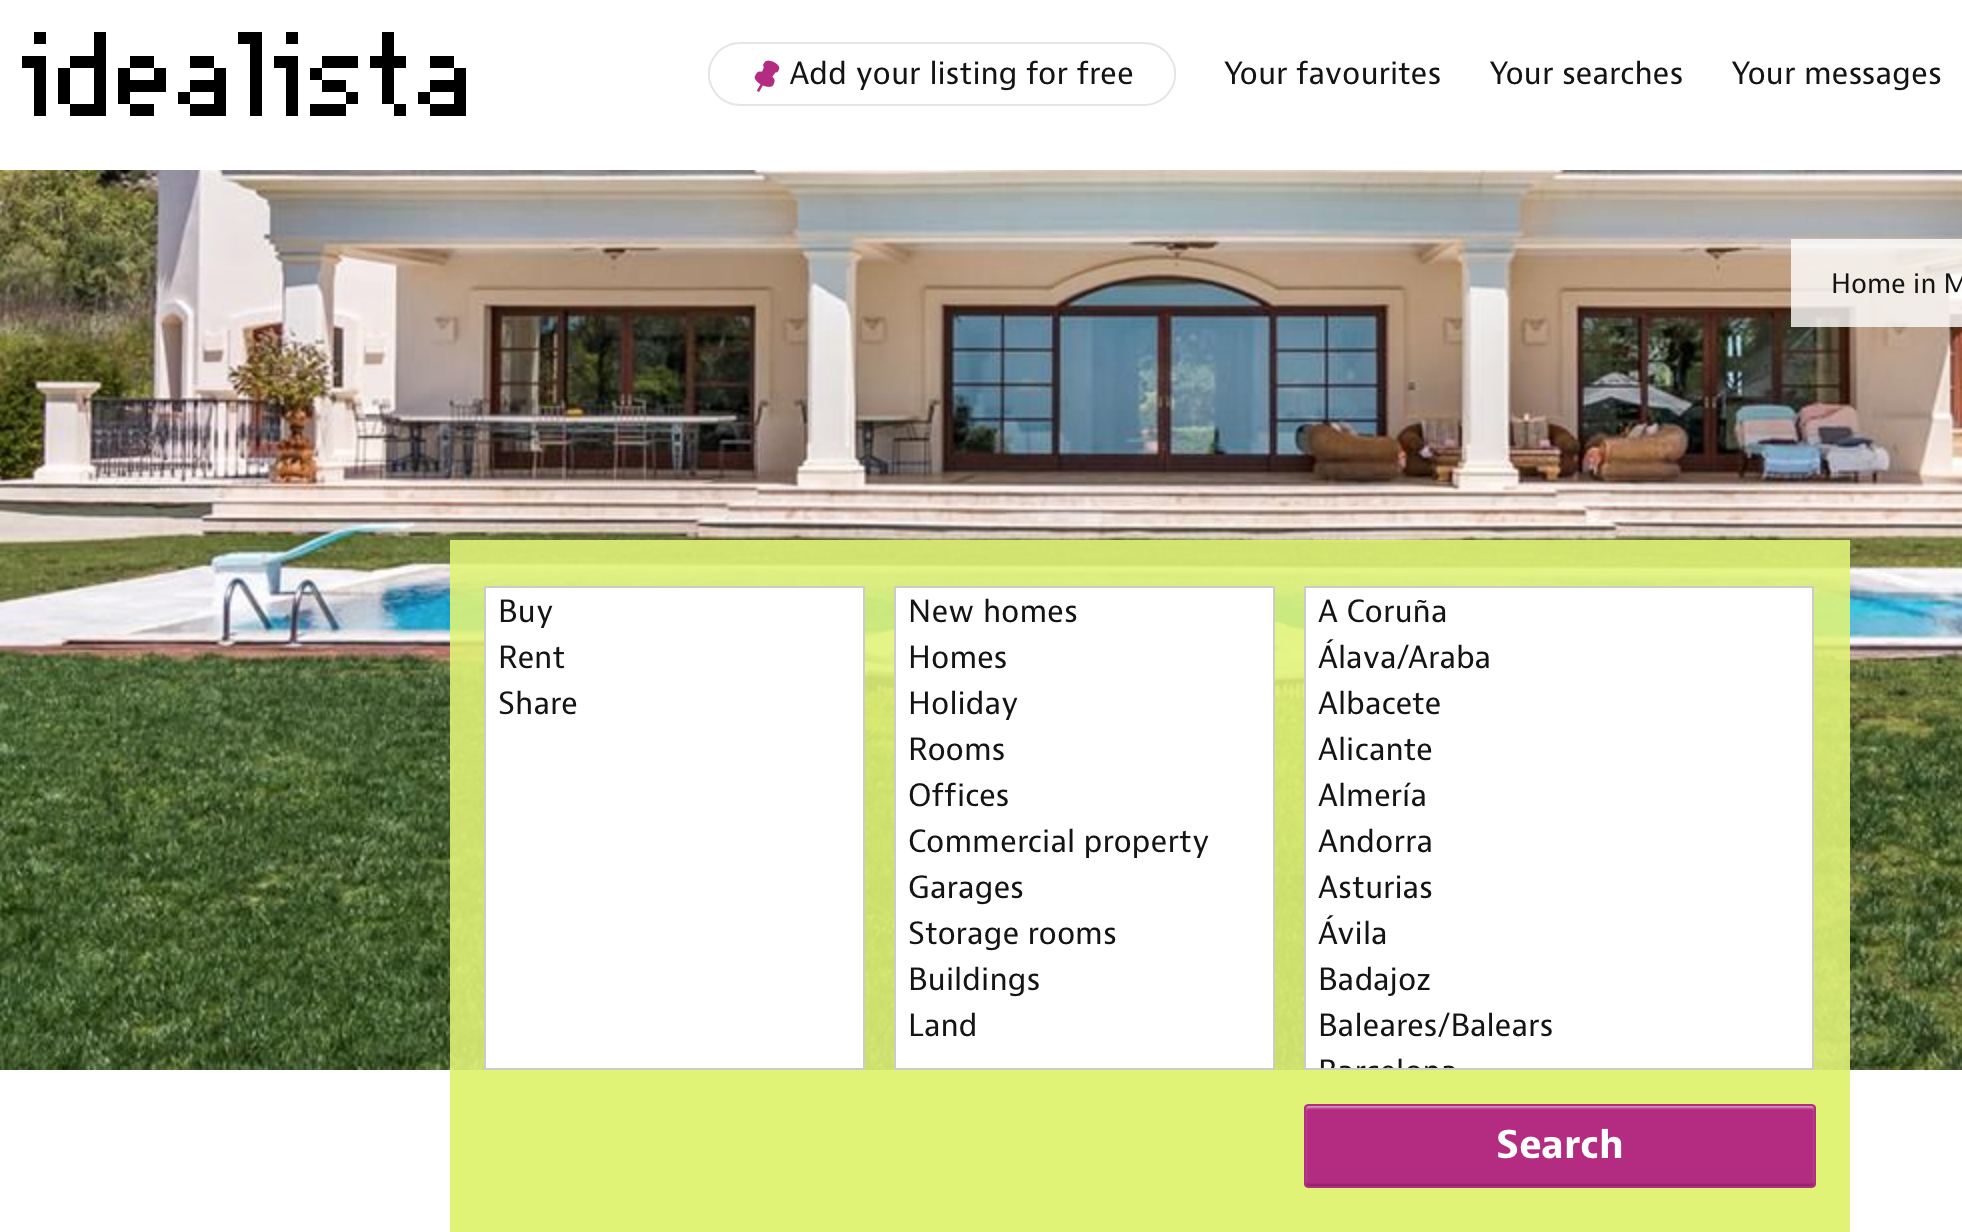 screen shot from www.idealista.com. Where I have found ads for places to rent in Spain.